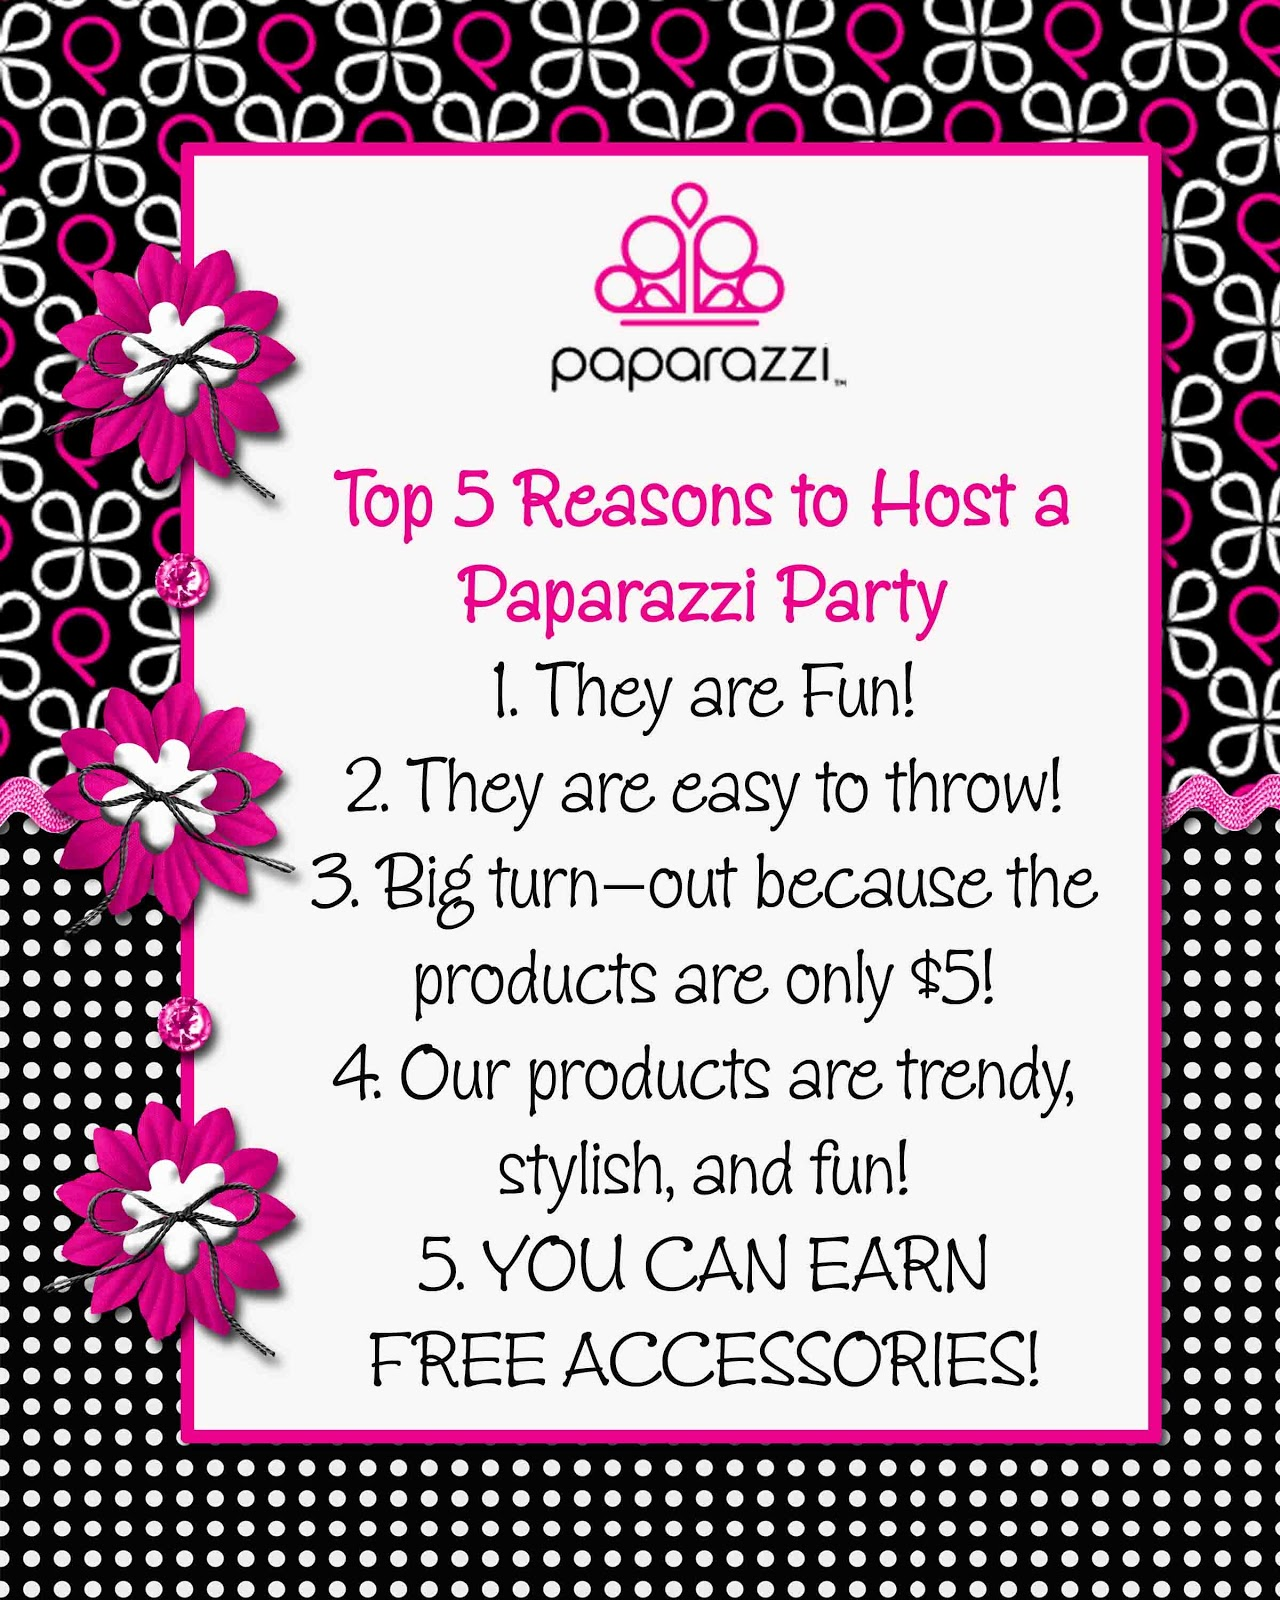 Paparazzi Jewelry Accessories Everything Is Just 5